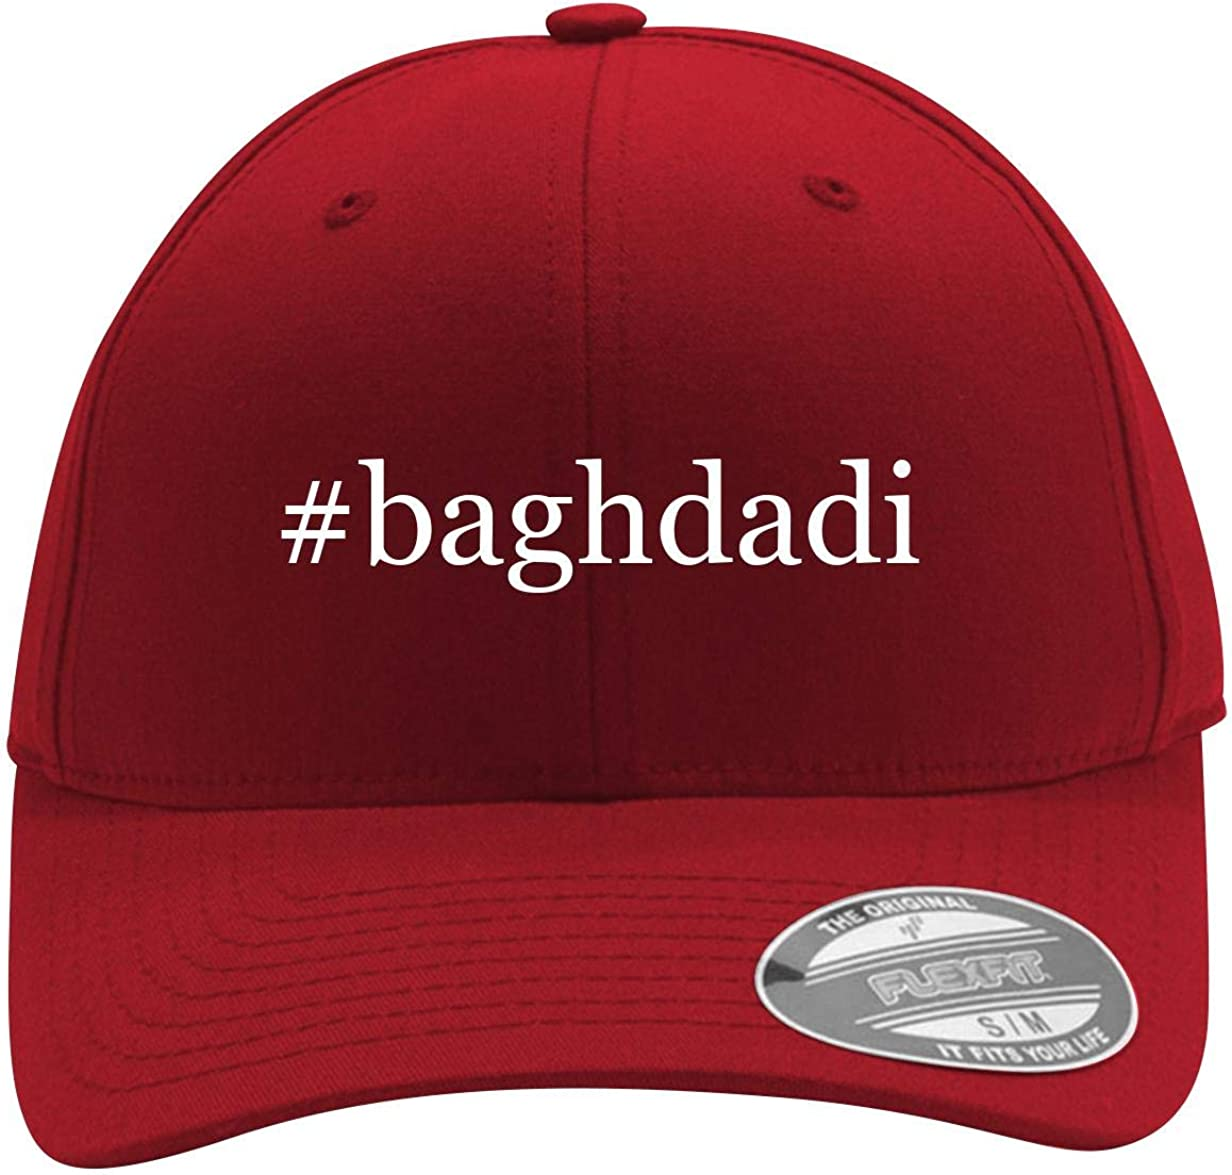 #Baghdadi - Men's Hashtag Flexfit Baseball Cap Hat